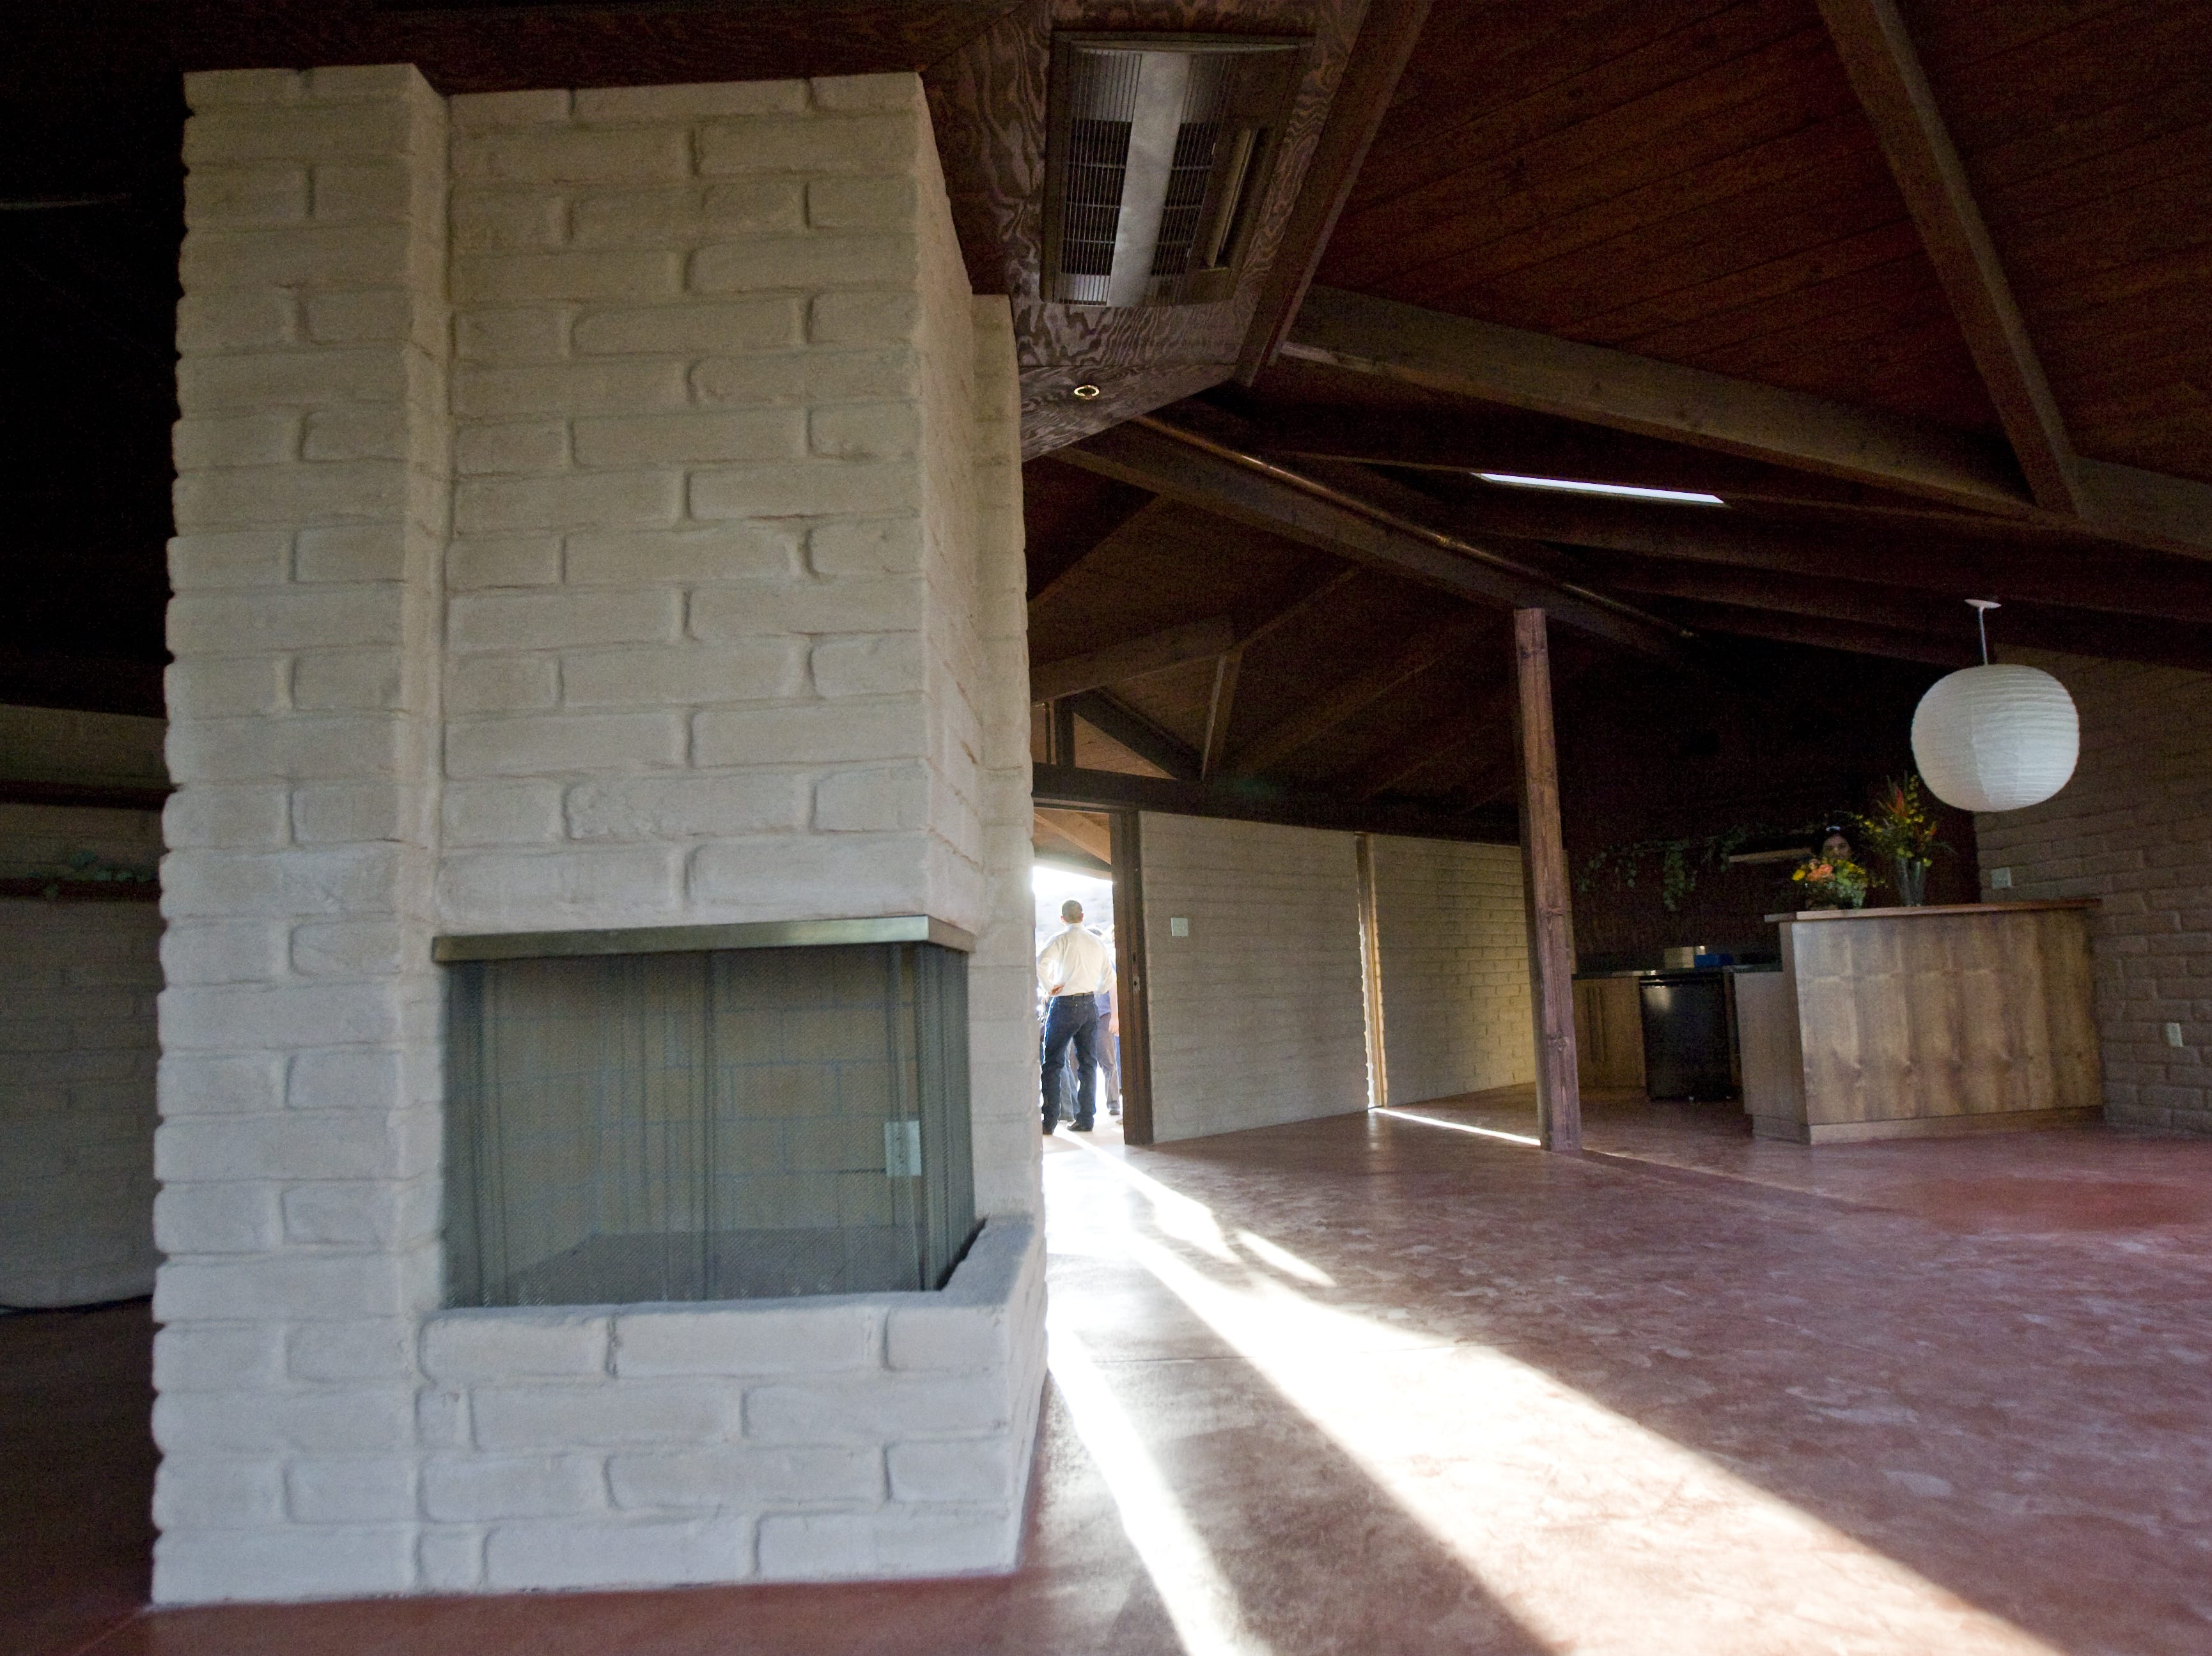 1Guests enter retired Supreme Court Justice Sandra Day O'Connor's house at Papago Park in Tempe on Oct. 18, 2009.